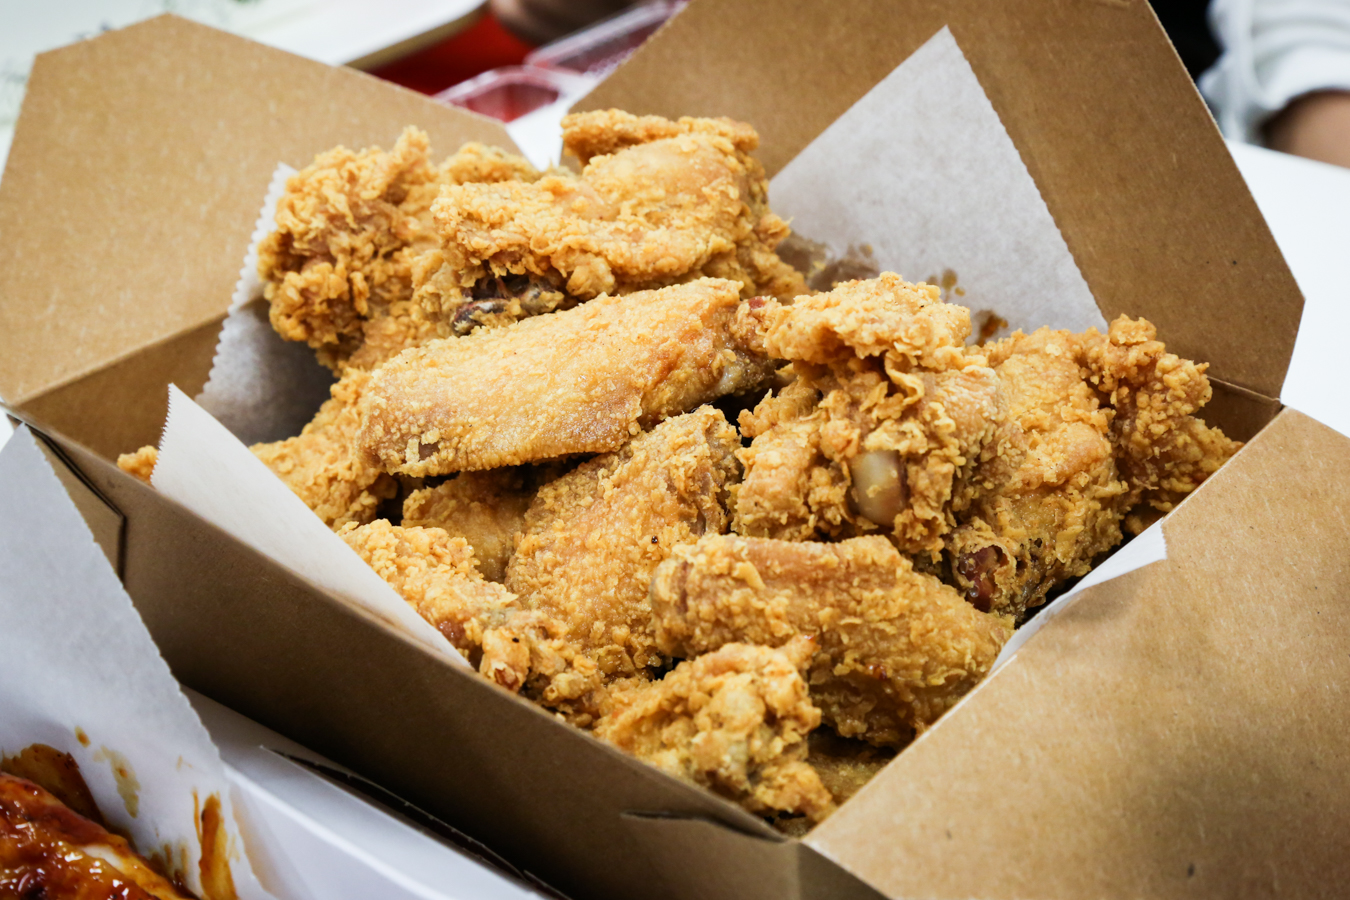 A full order ($20.99) of Von's Chicken number one selling crispy fried is where it's at! Photo by Grant Shindo